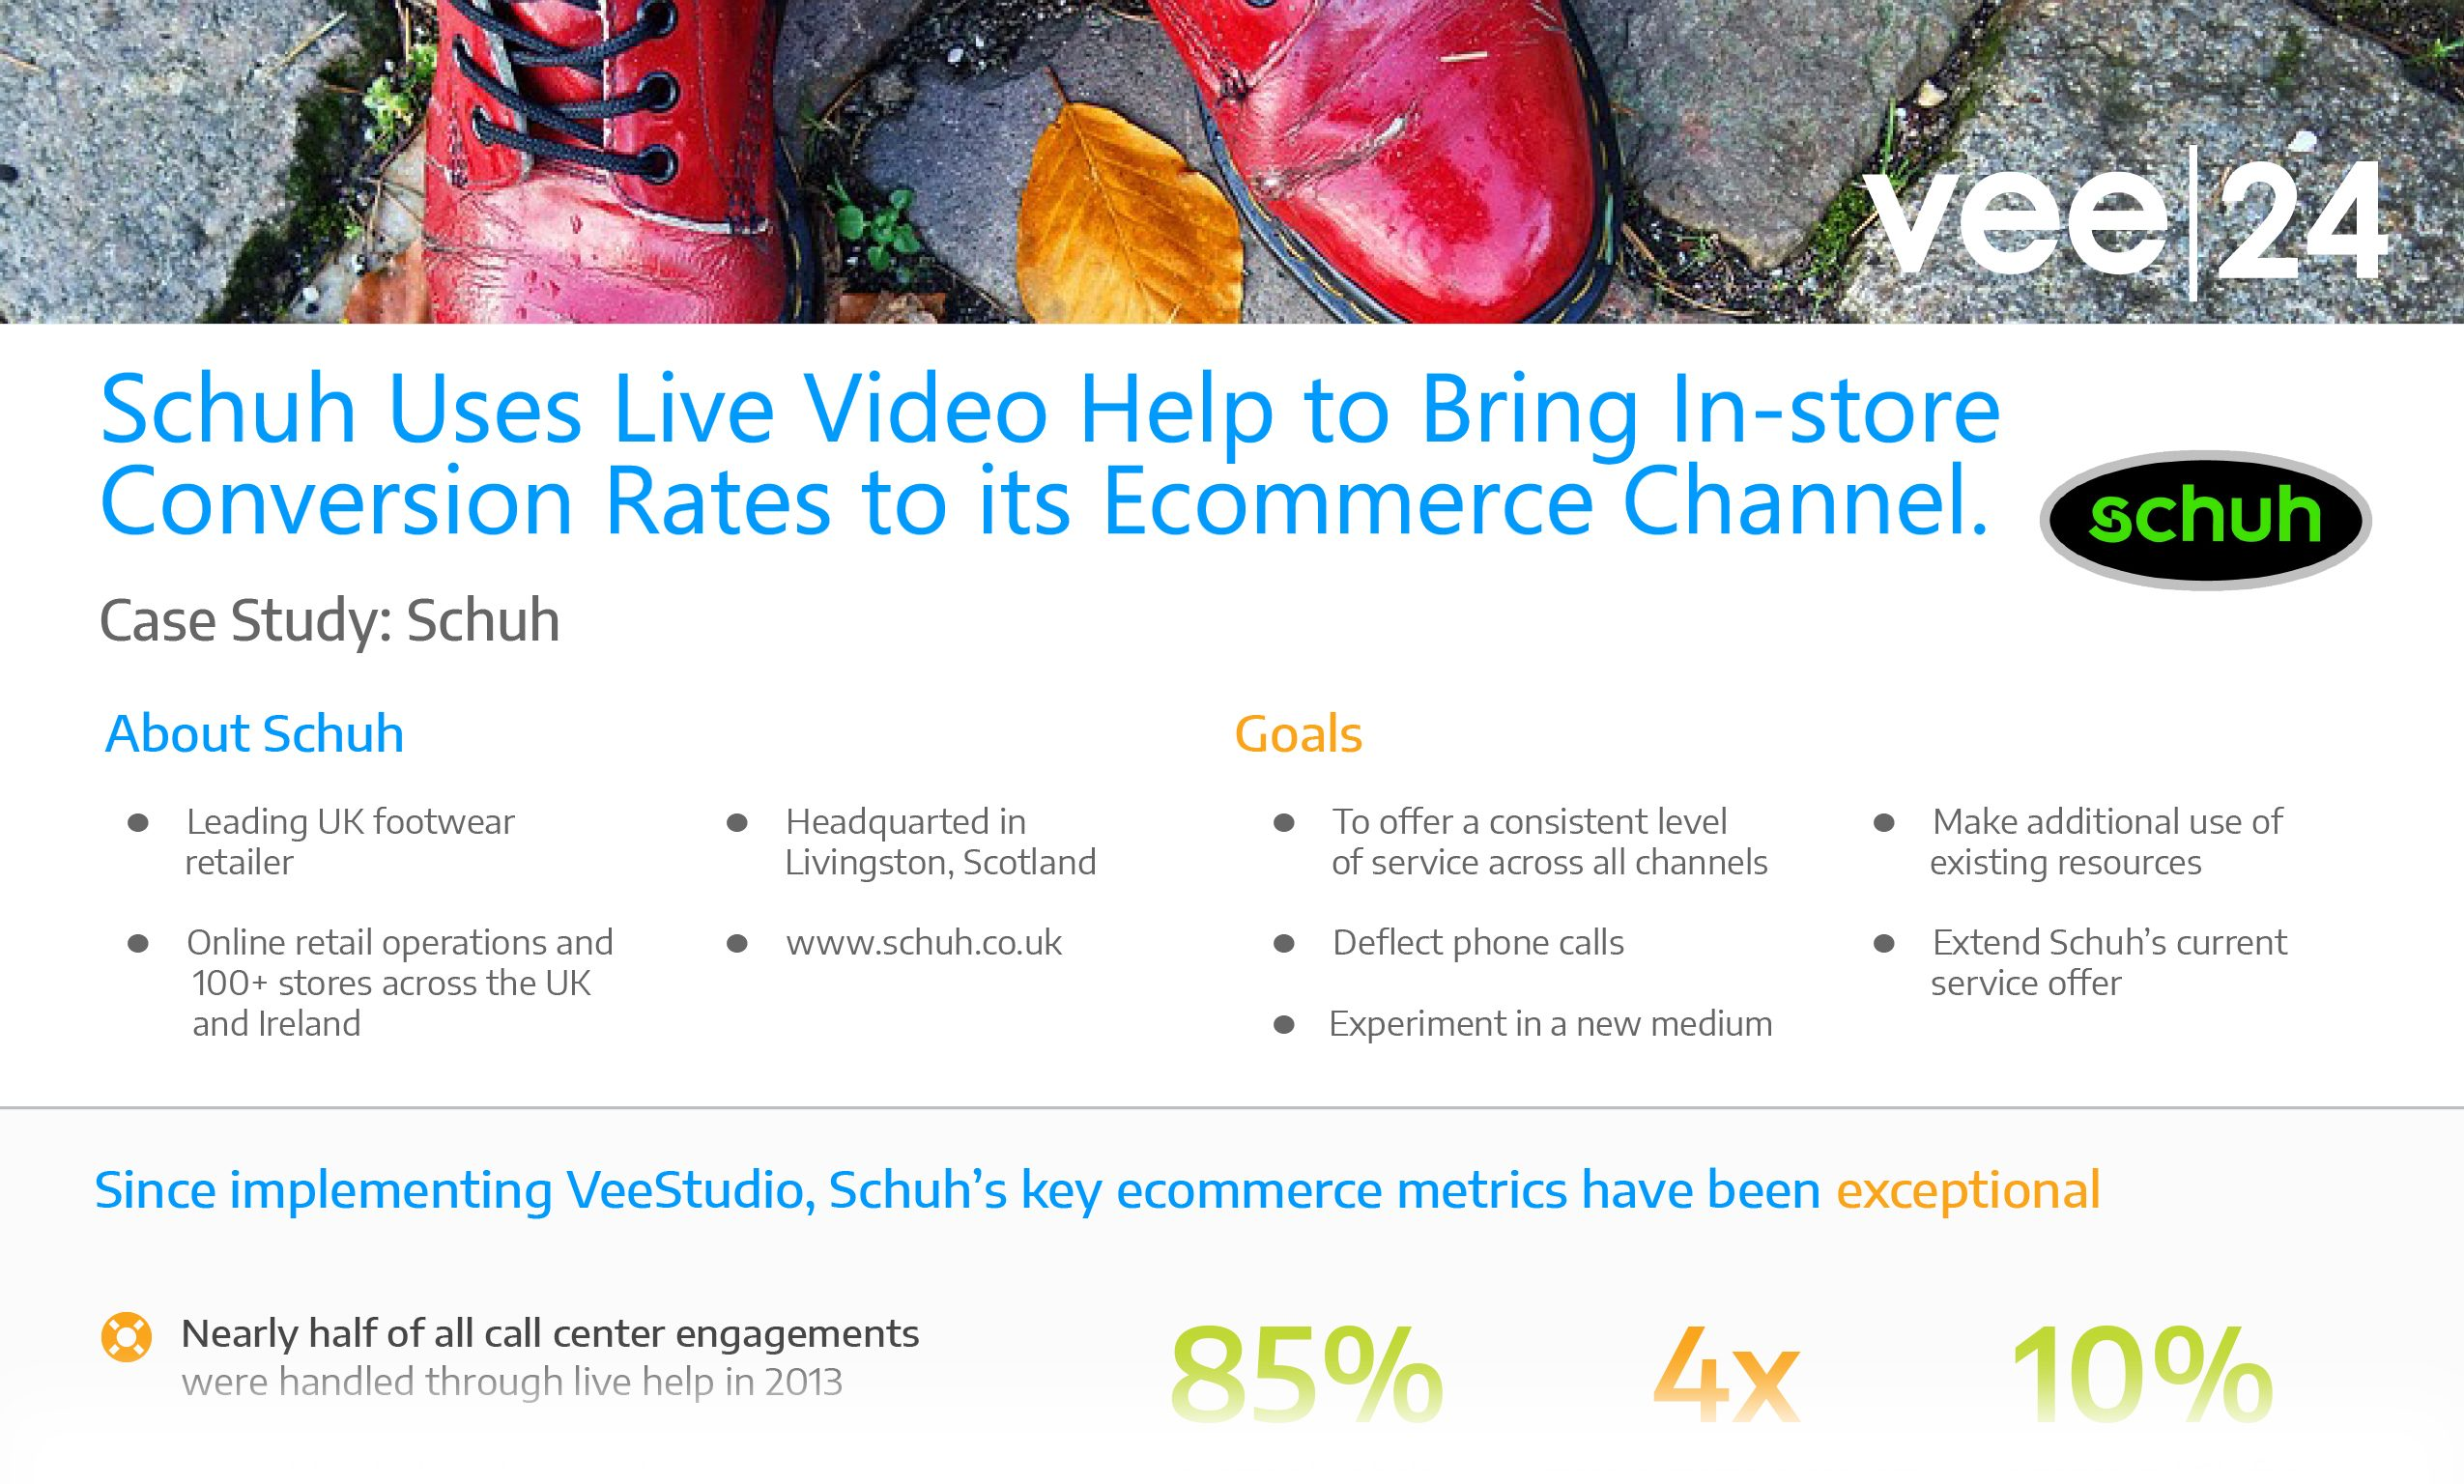 schuh case study live video chat